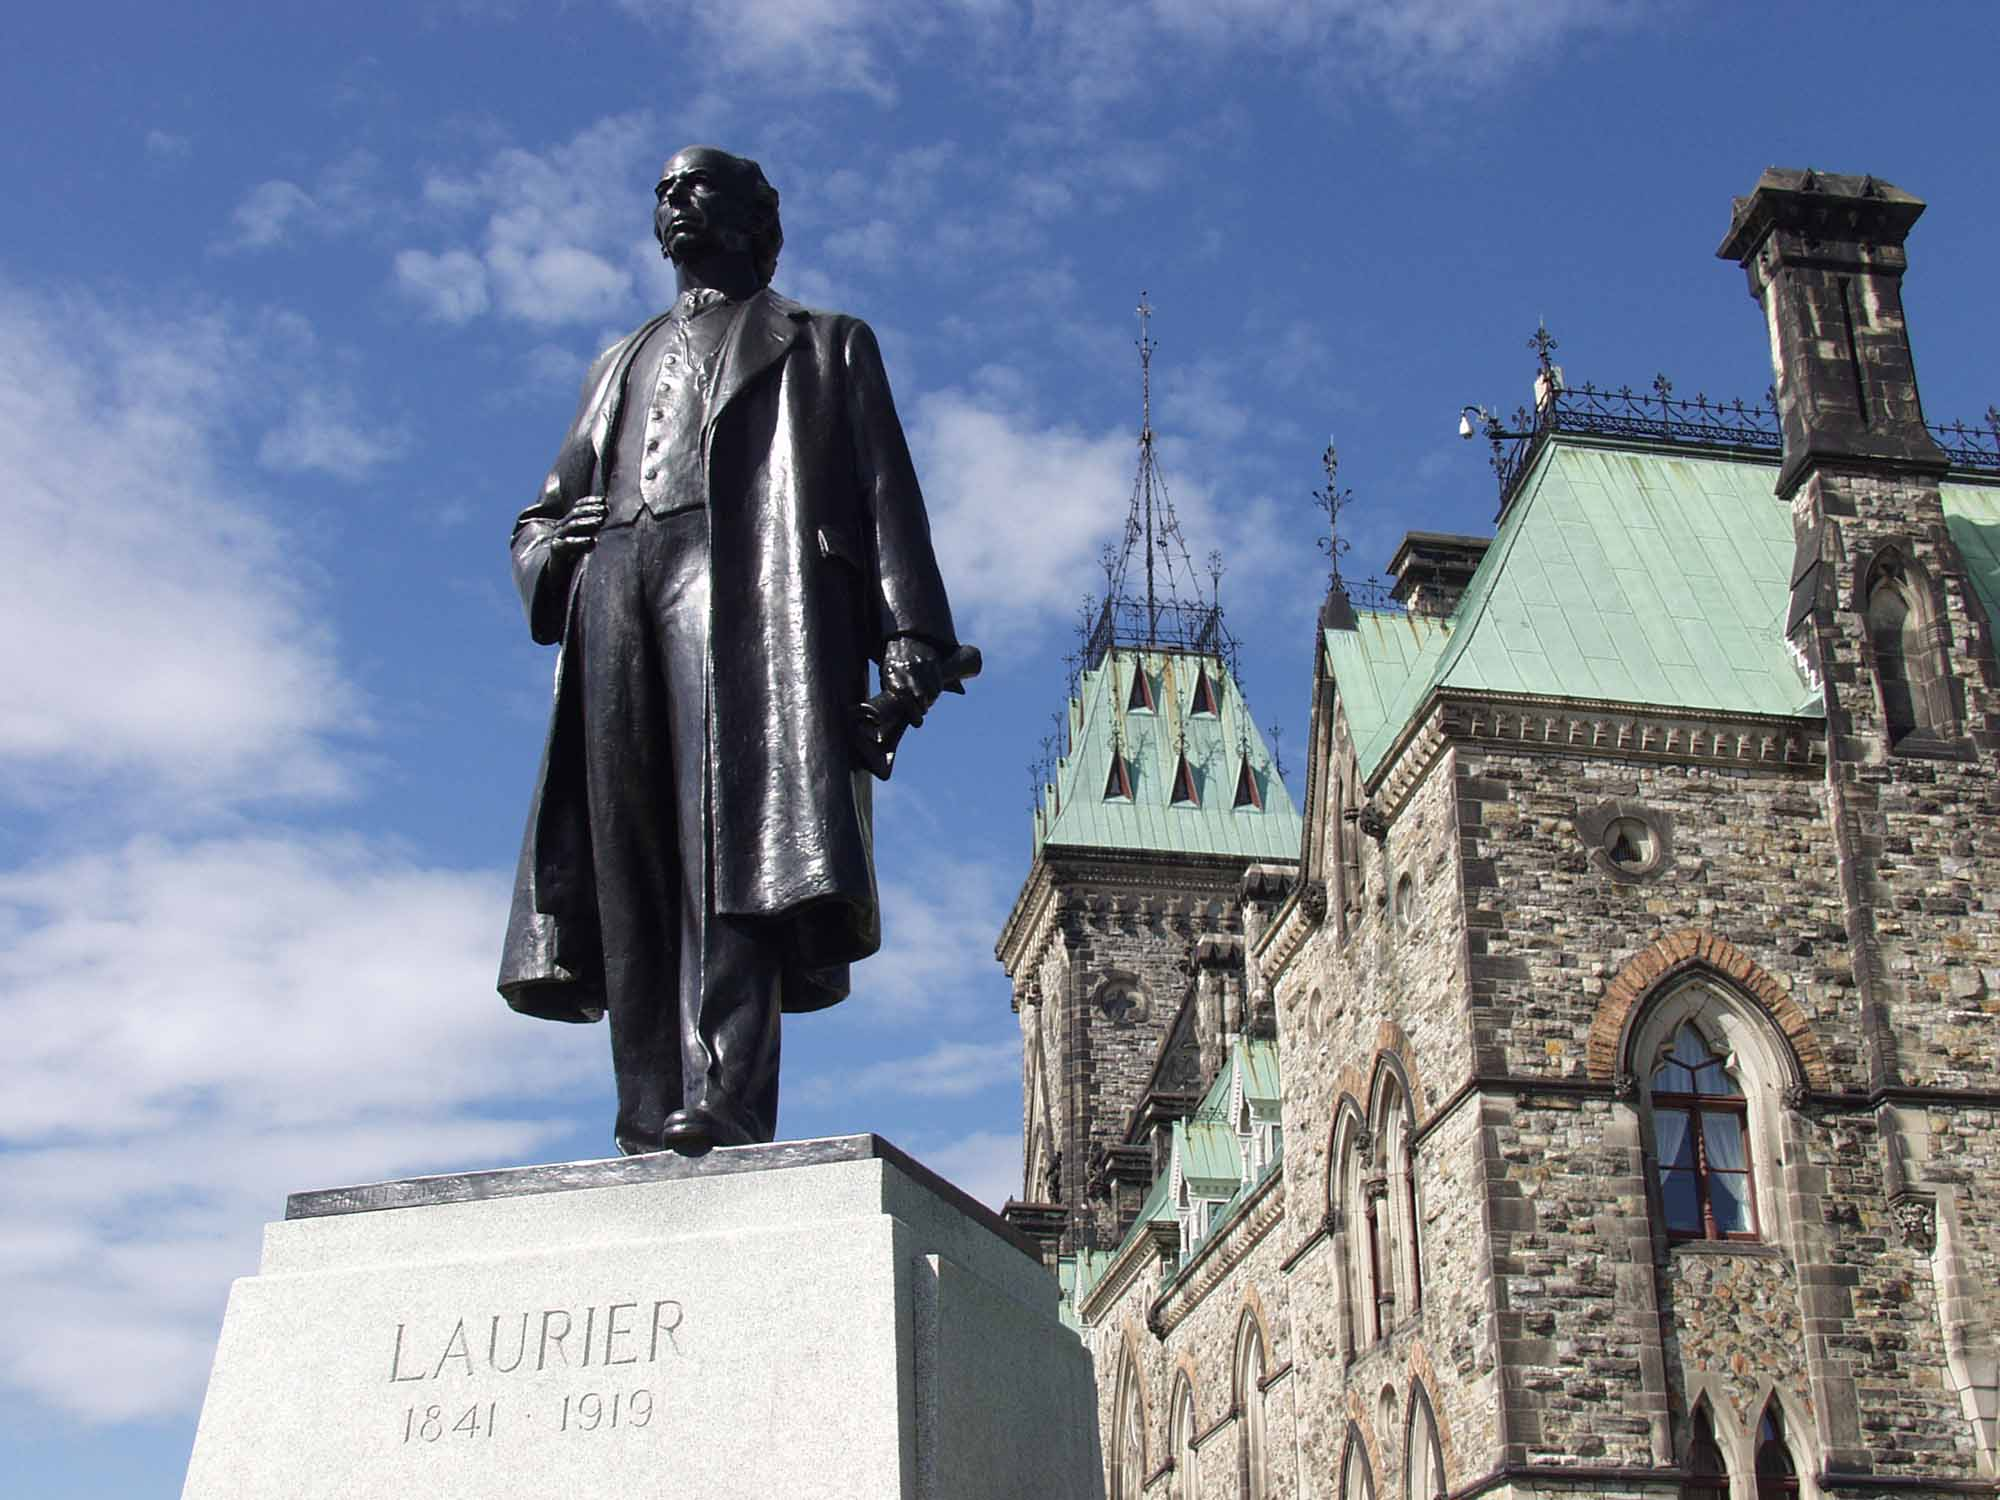 Sir Wilfrid Laurier: the Politics of Compromise